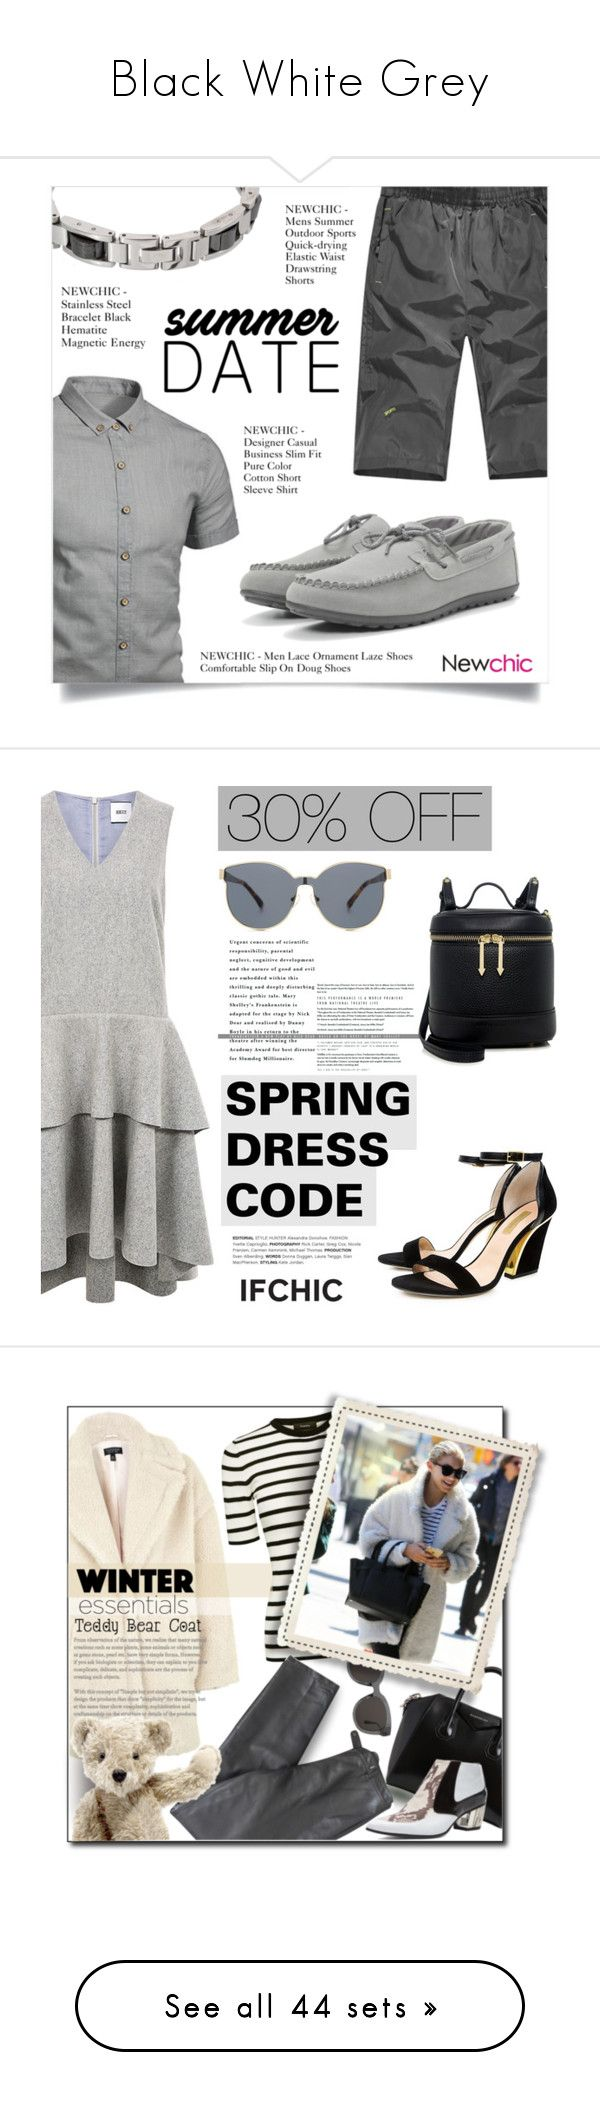 """""""Black White Grey"""" by my-names-michi ❤ liked on Polyvore featuring men's fashion, menswear, Edit, Dee Keller, Karen Walker, contemporary, Givenchy, Topshop, Theory and Lafayette 148 New York"""